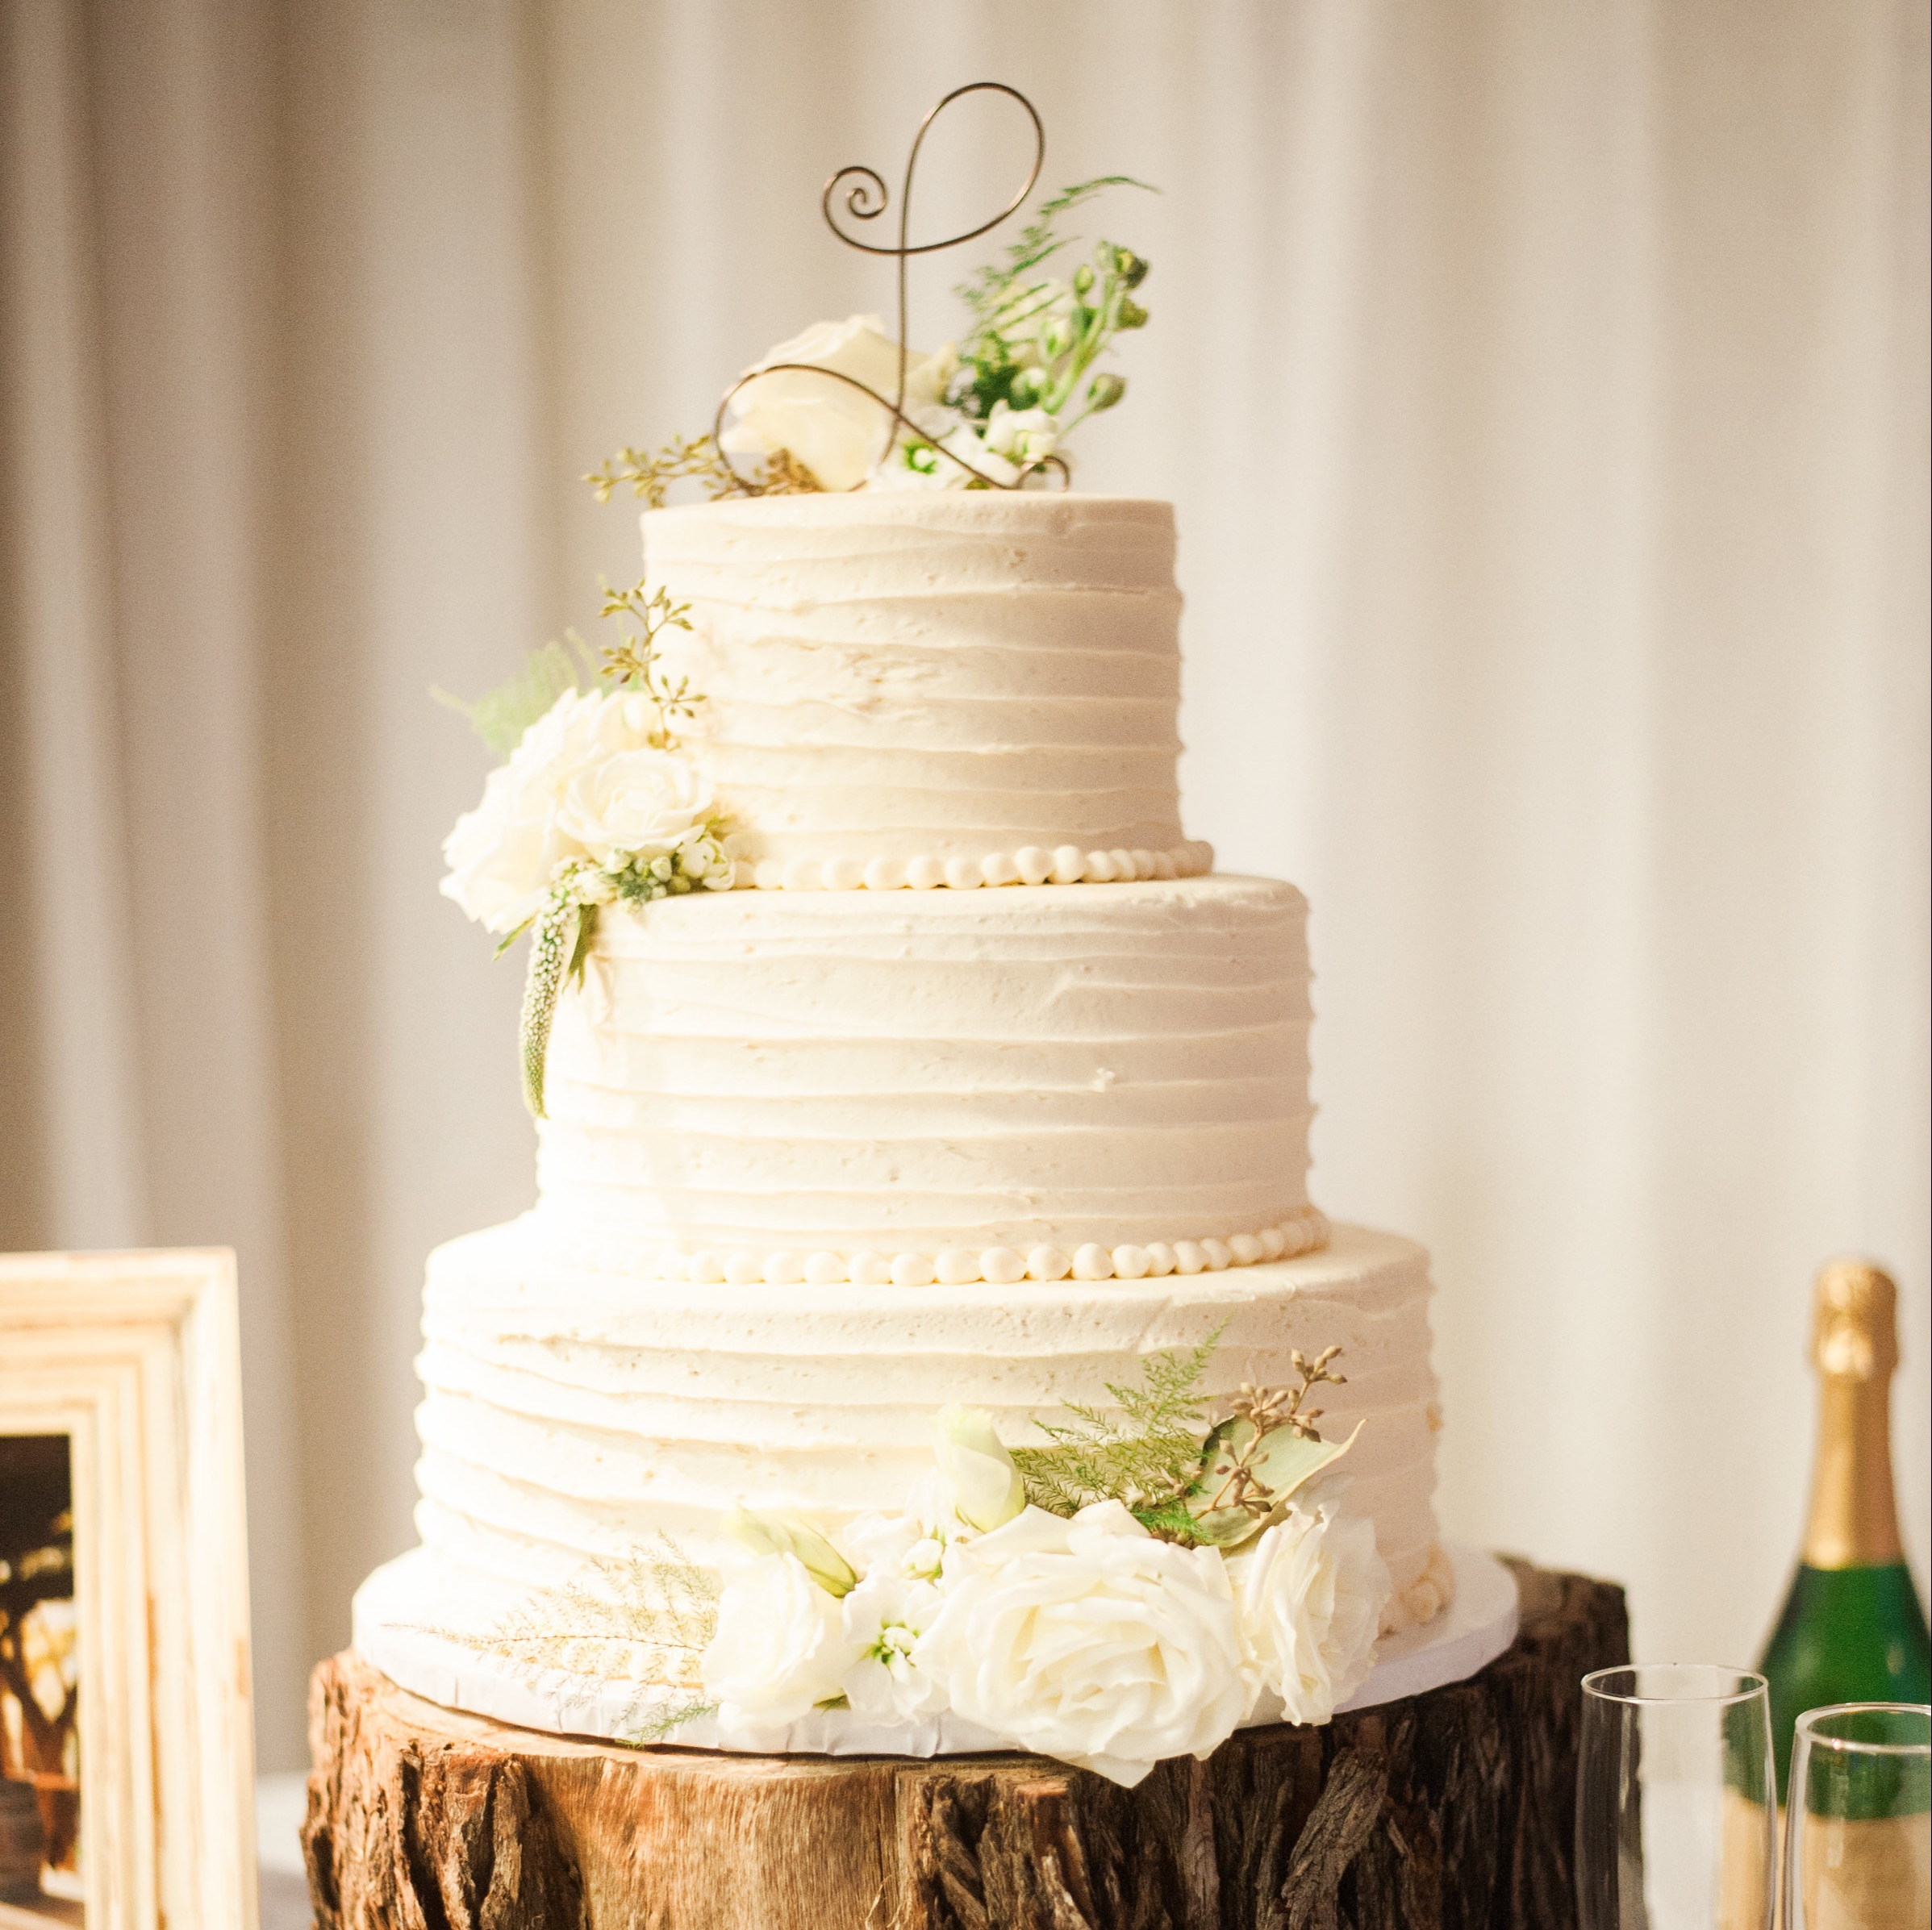 The Masters Of The Wedding Cake: Hy-Vee Cakes, Prices, & How To Order